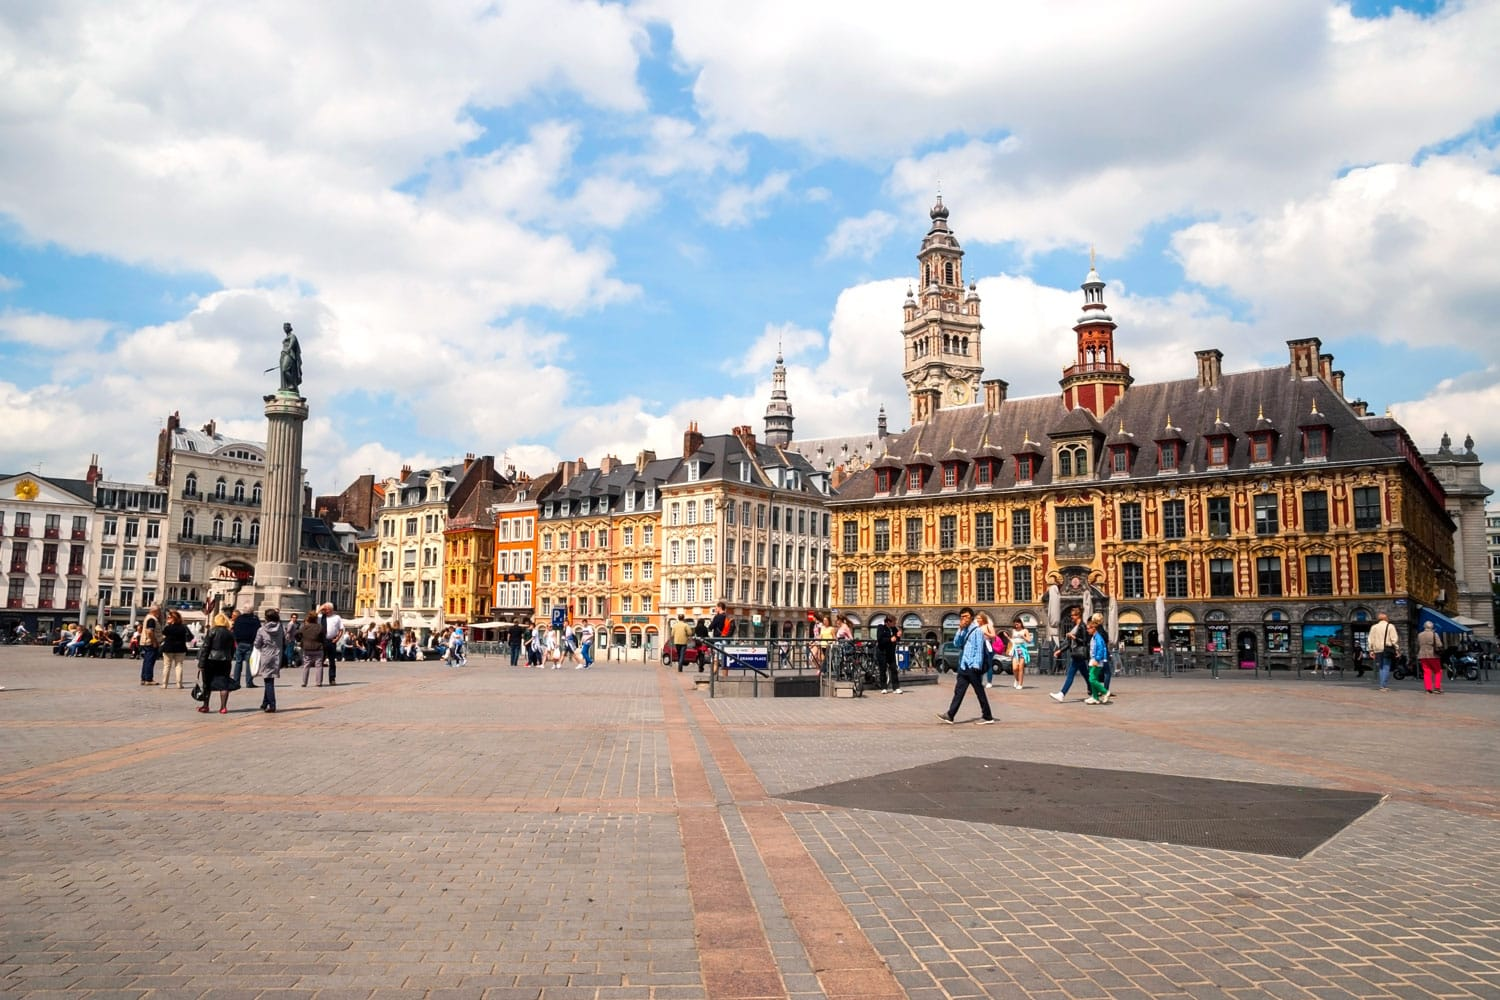 People passing Central town square, La Grand Place in Lille, France